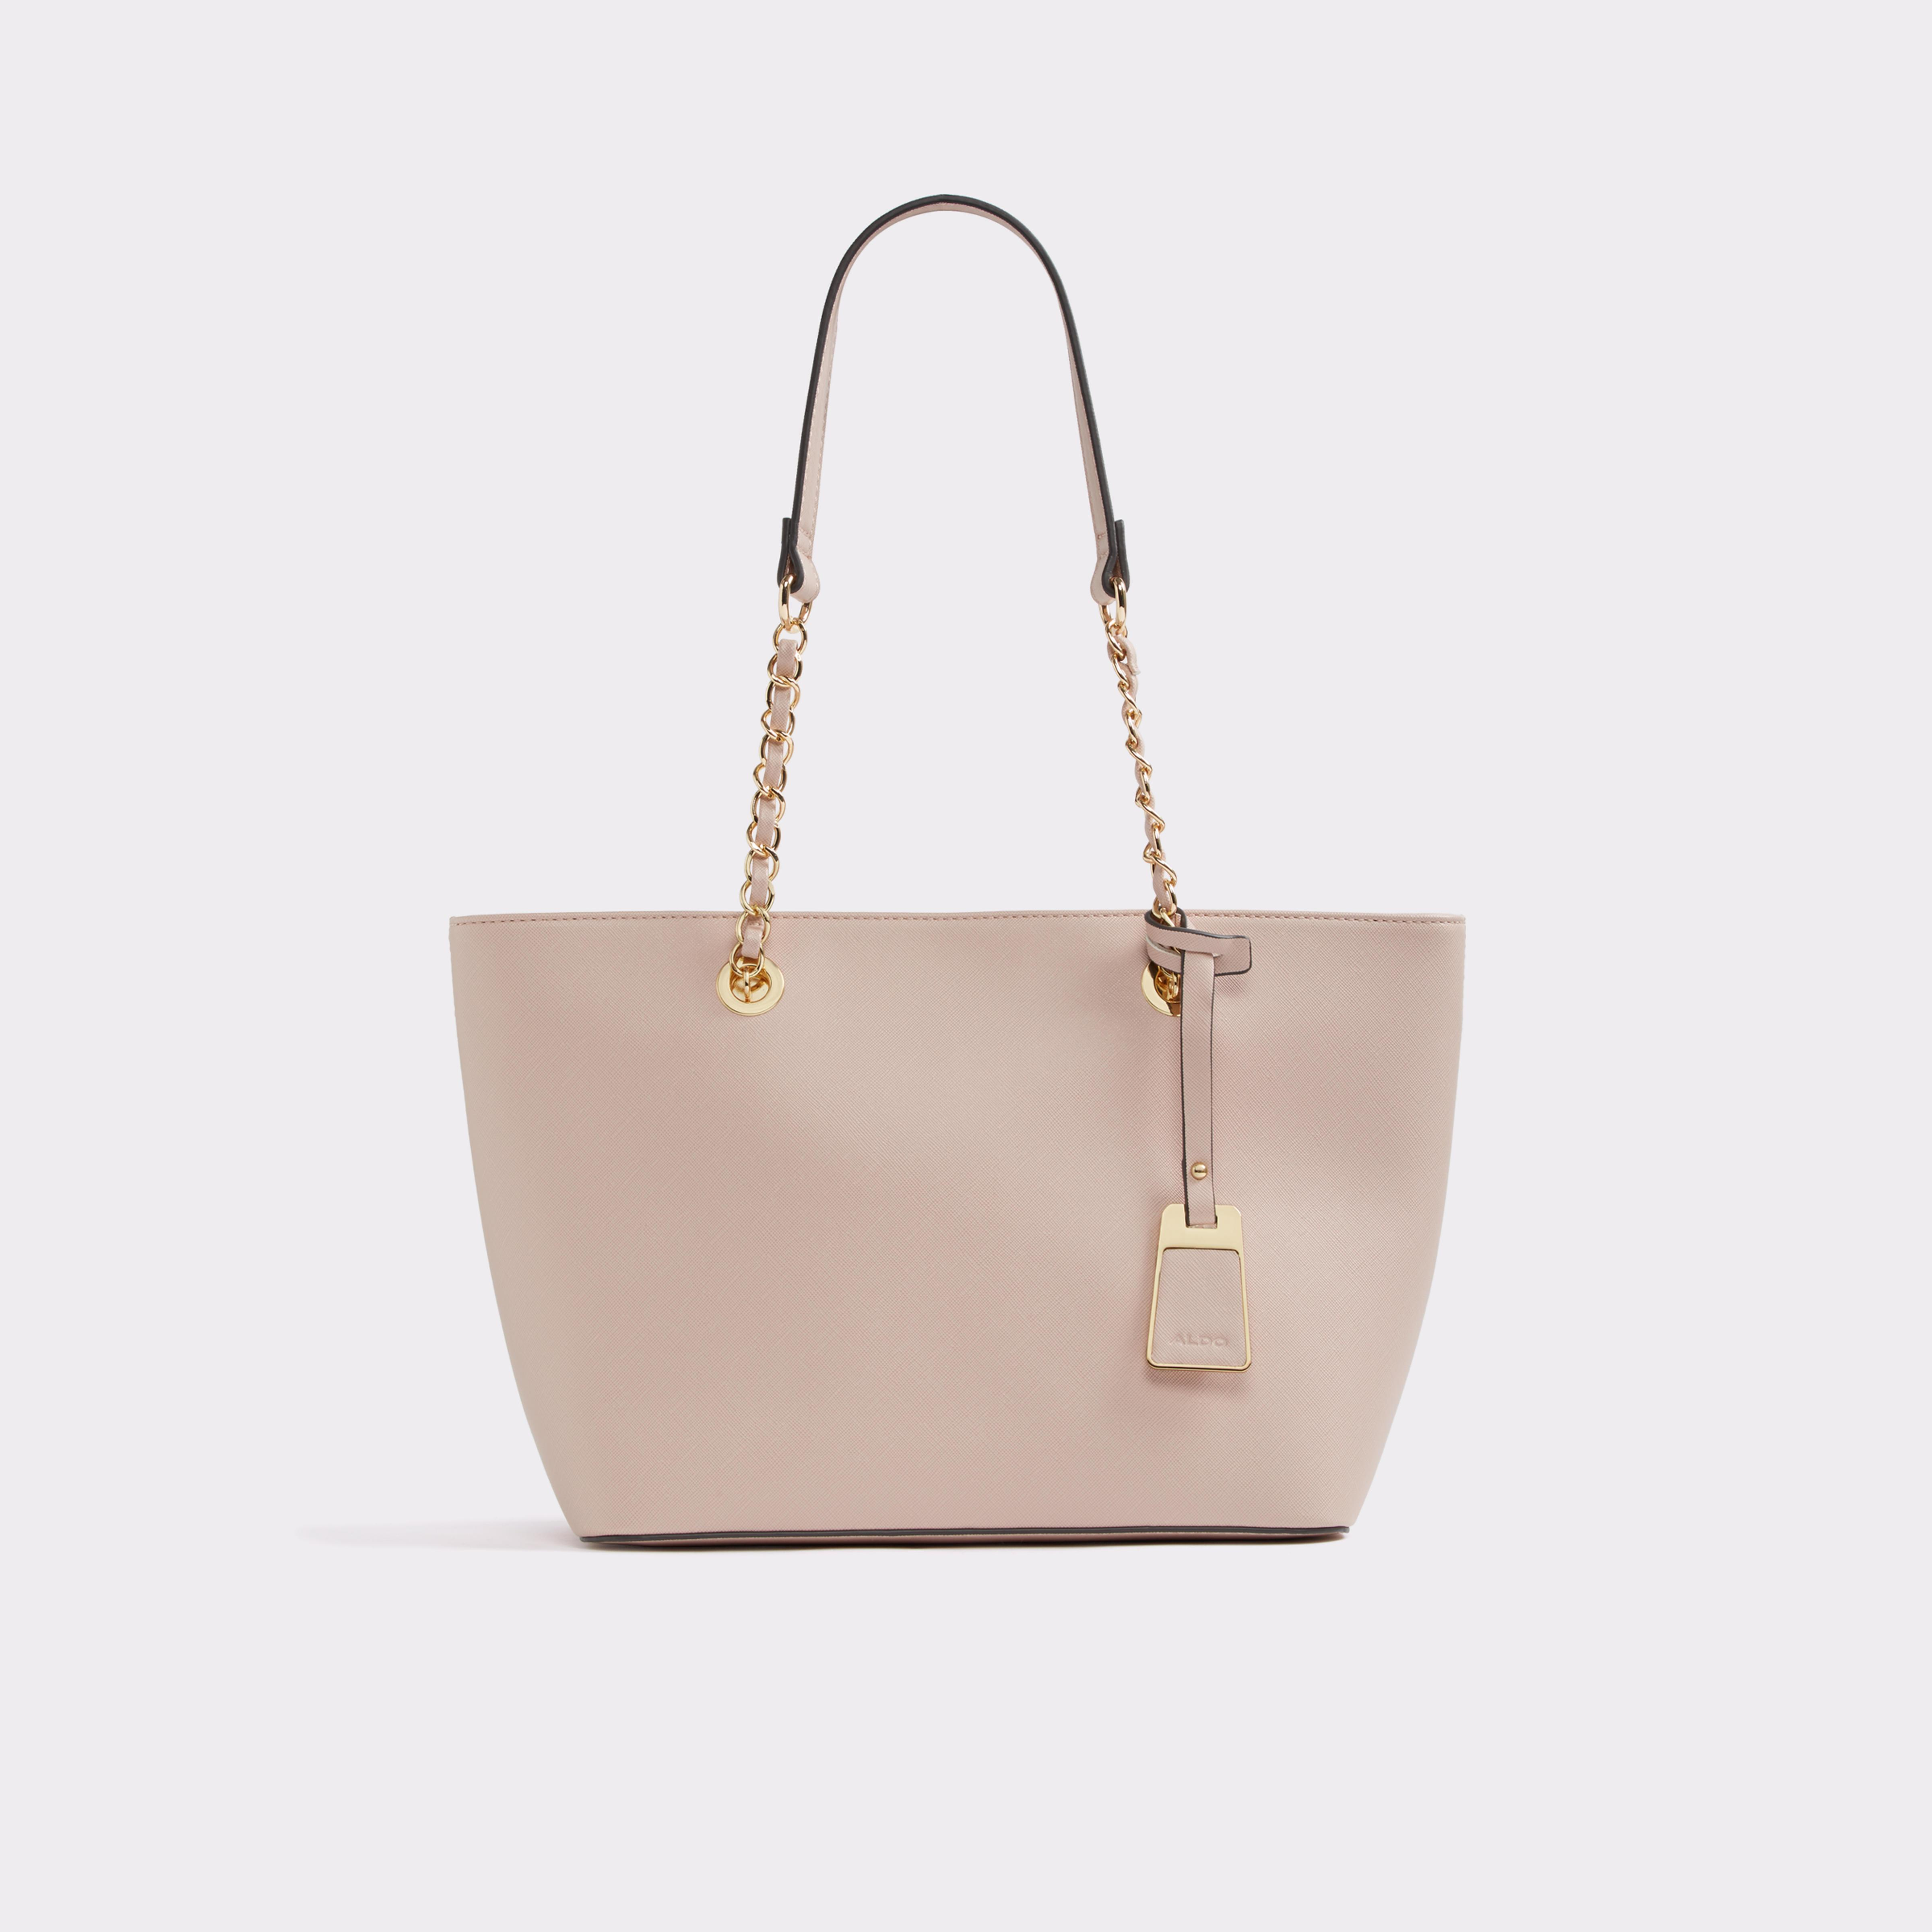 64d9acf7679 ALDO. Women s Pink Jambu. See more Leather Totes and shopper bags.